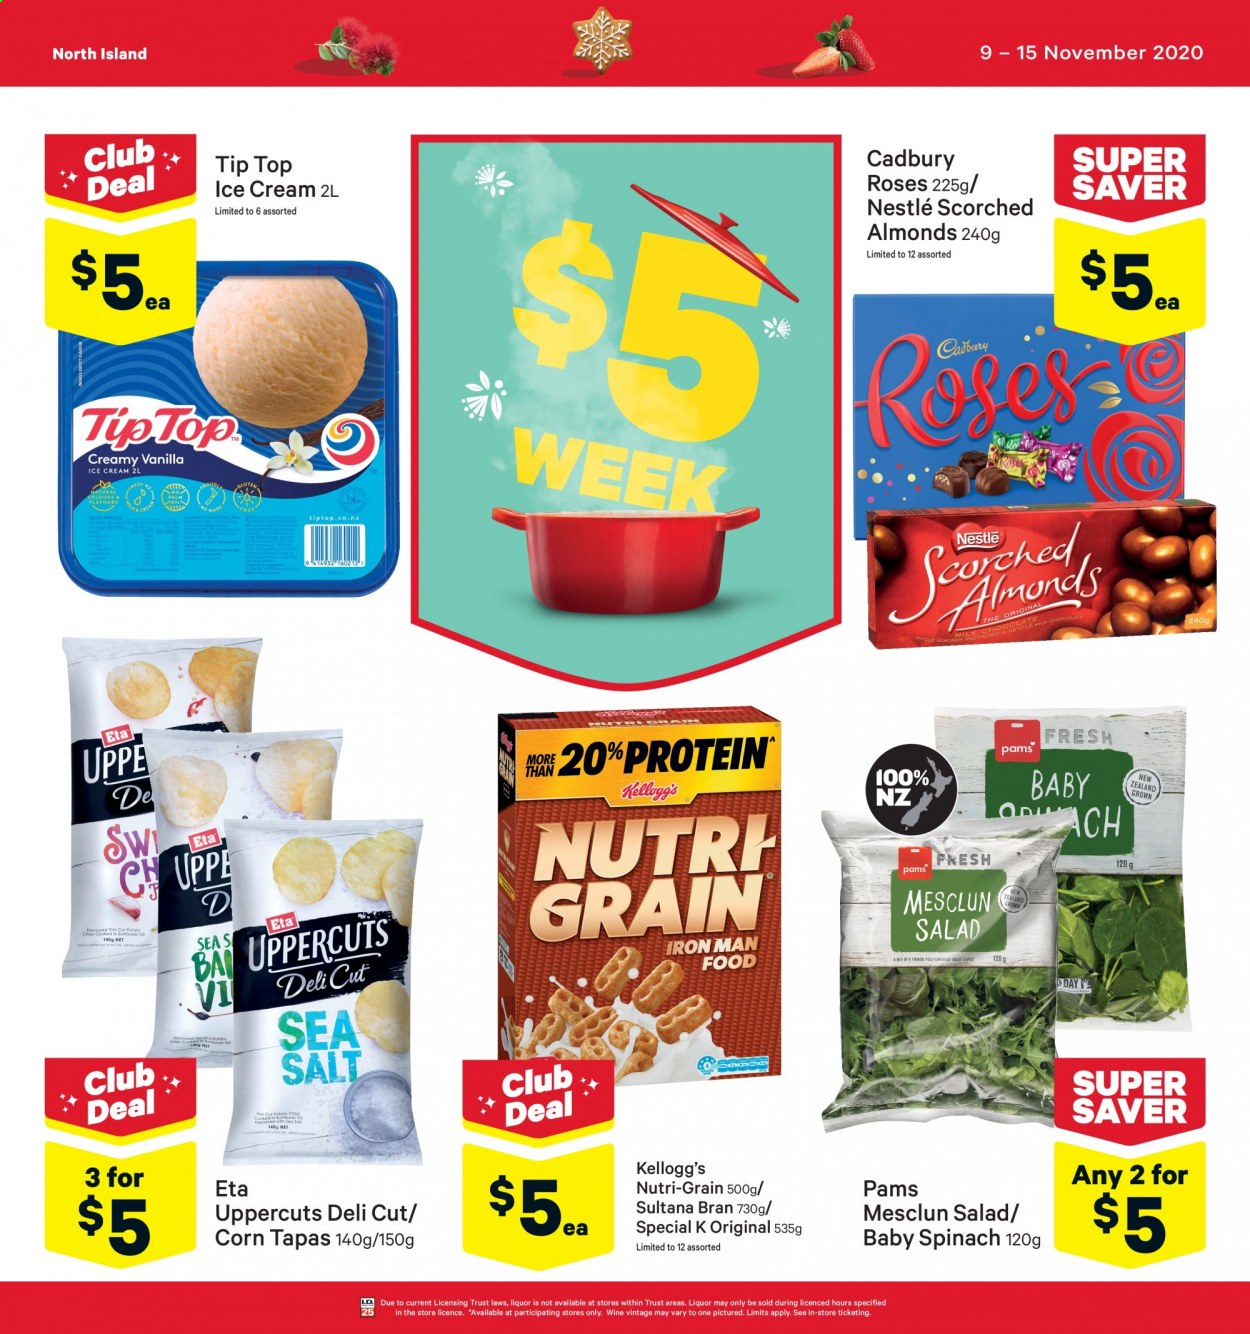 New World mailer - 09.11.2020 - 15.11.2020 - Sales products - almonds, bran, corn, milk chocolate, nestlé, spinach, ice cream, iron, potato chips, protein, chips, chocolate, wine, roses, salt, salad, sea salt, sunflower, tip top, liquor, iron man, trust. Page 1.